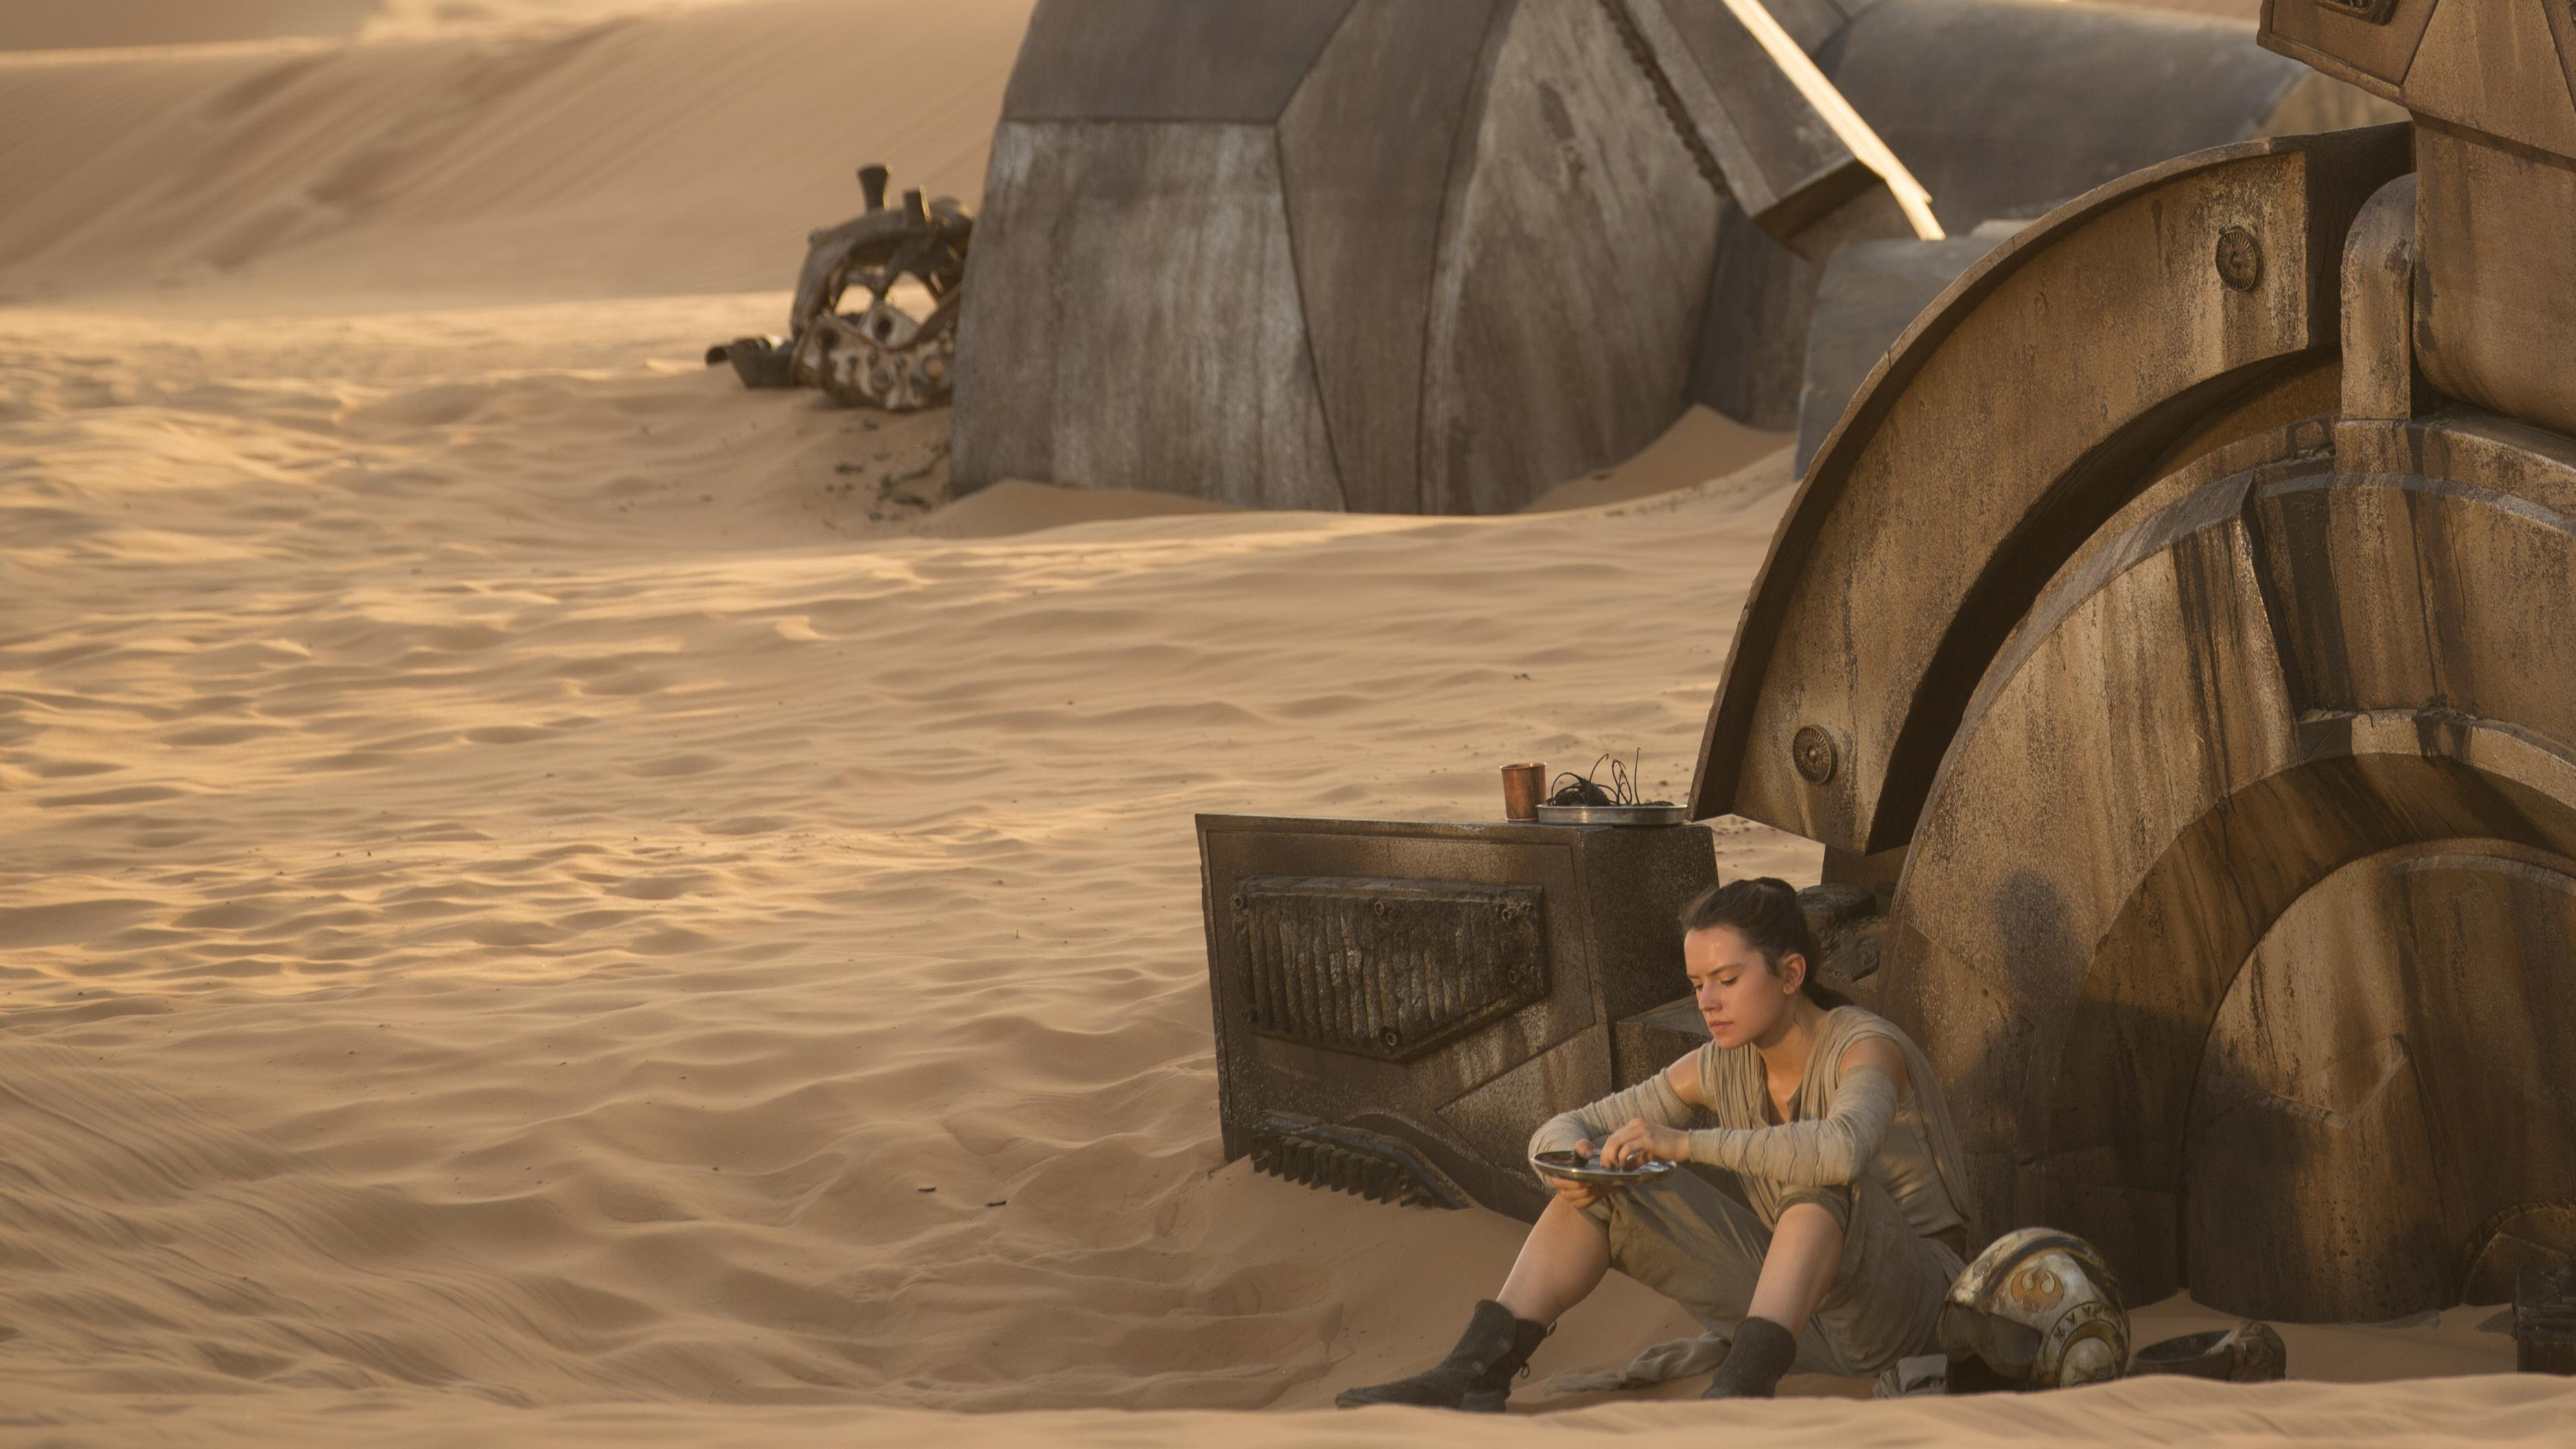 Archaeology Star Wars Strikes Back Heritagedaily